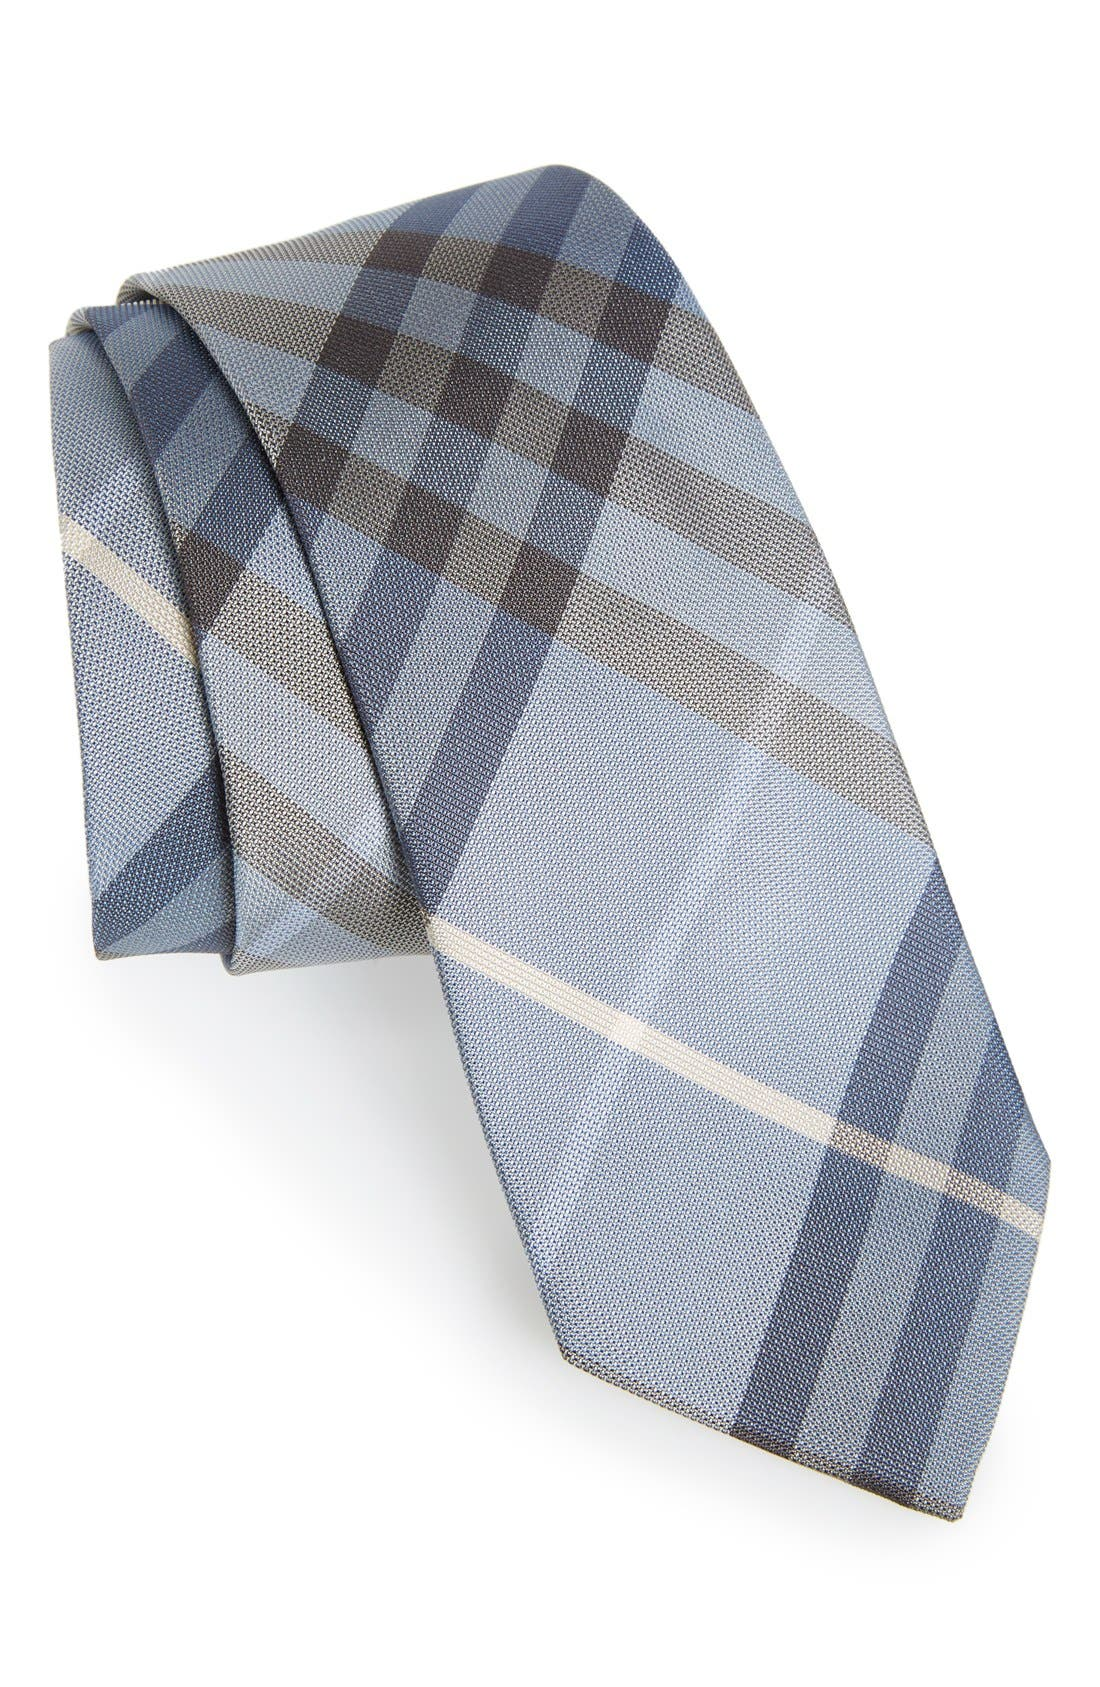 Main Image - Burberry 'Manston' Check Silk Tie